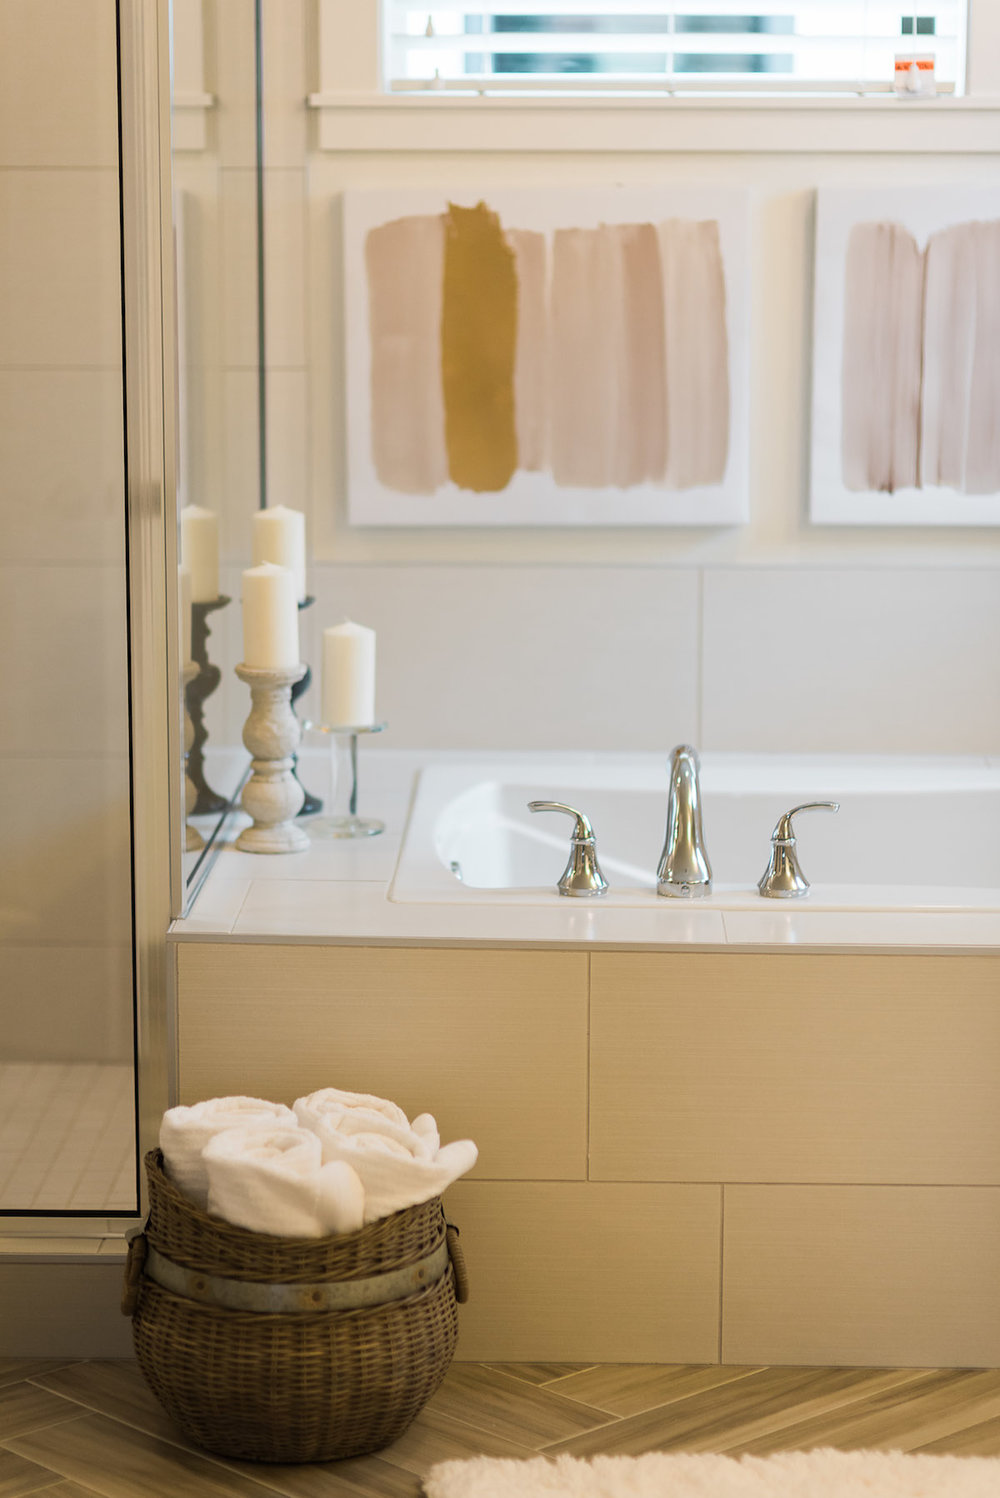 Bathroom design ideas using white tile, vintage candles and beige colors for inspiration.